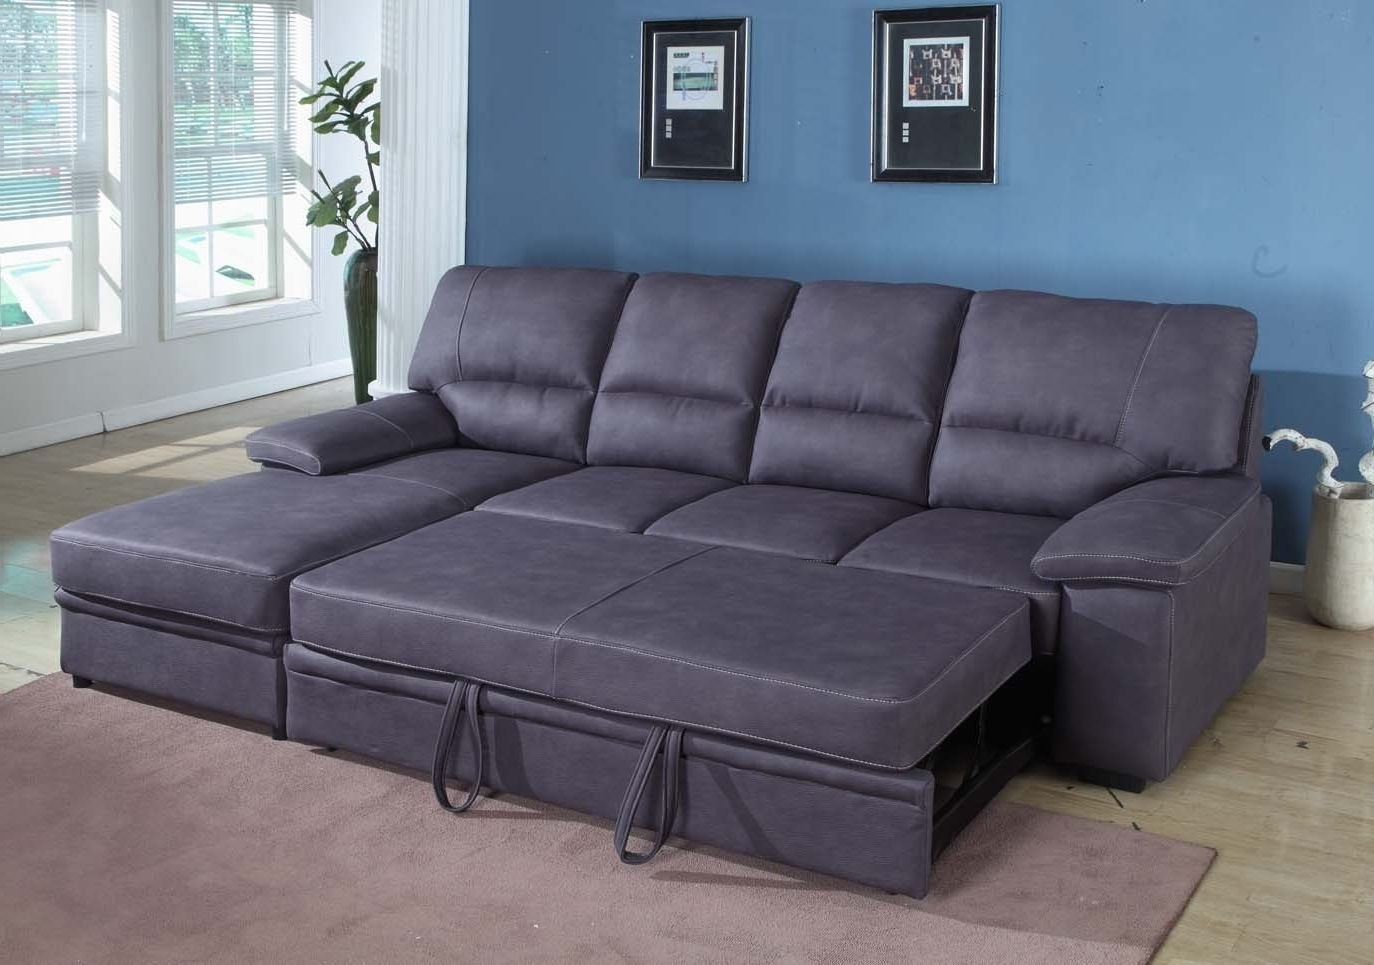 Most Popular Brilliant Sectional Sleeper Sofa With Chaise Cool Living Room With Regard To Sectional Sleeper Sofas With Chaise (View 5 of 15)